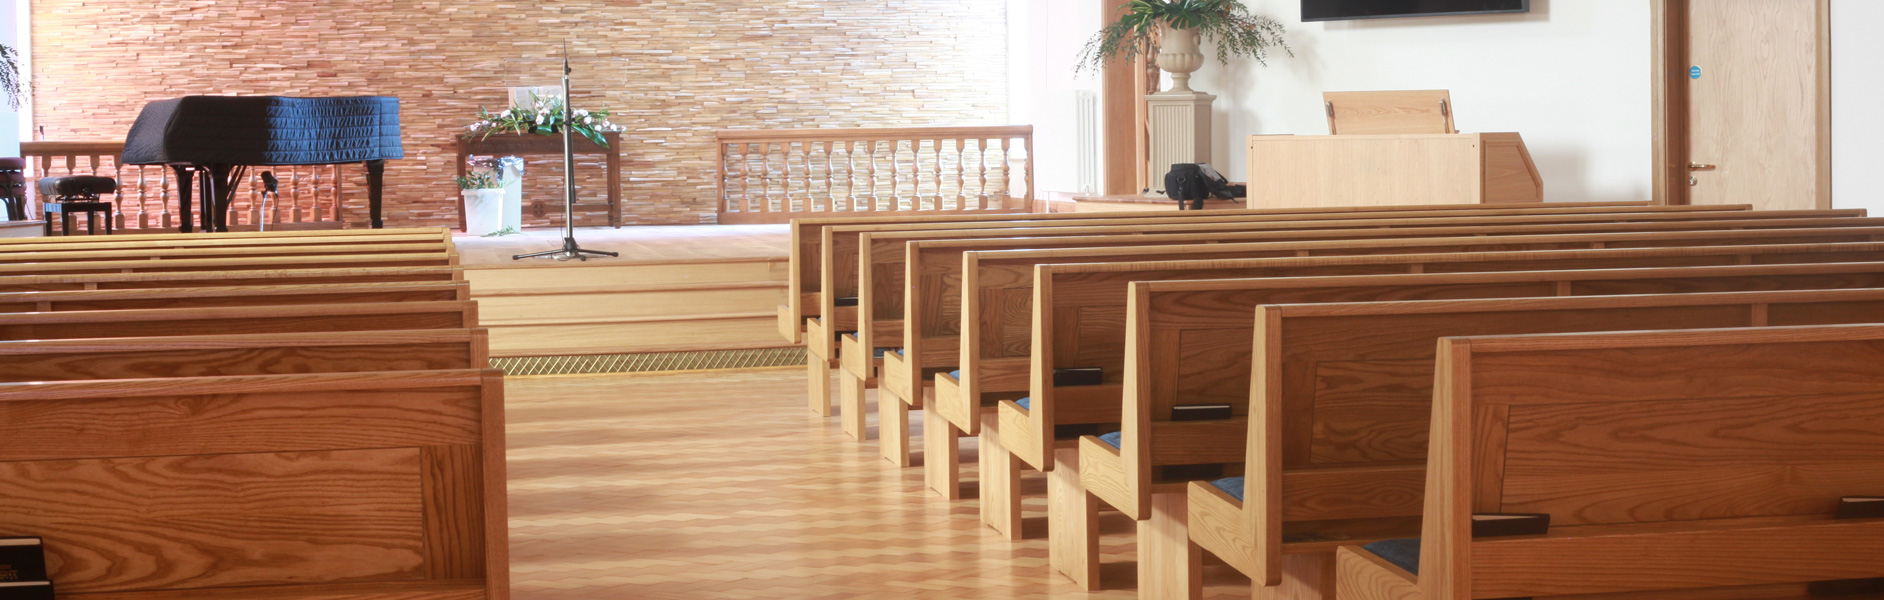 ICS design & manufacture church pews